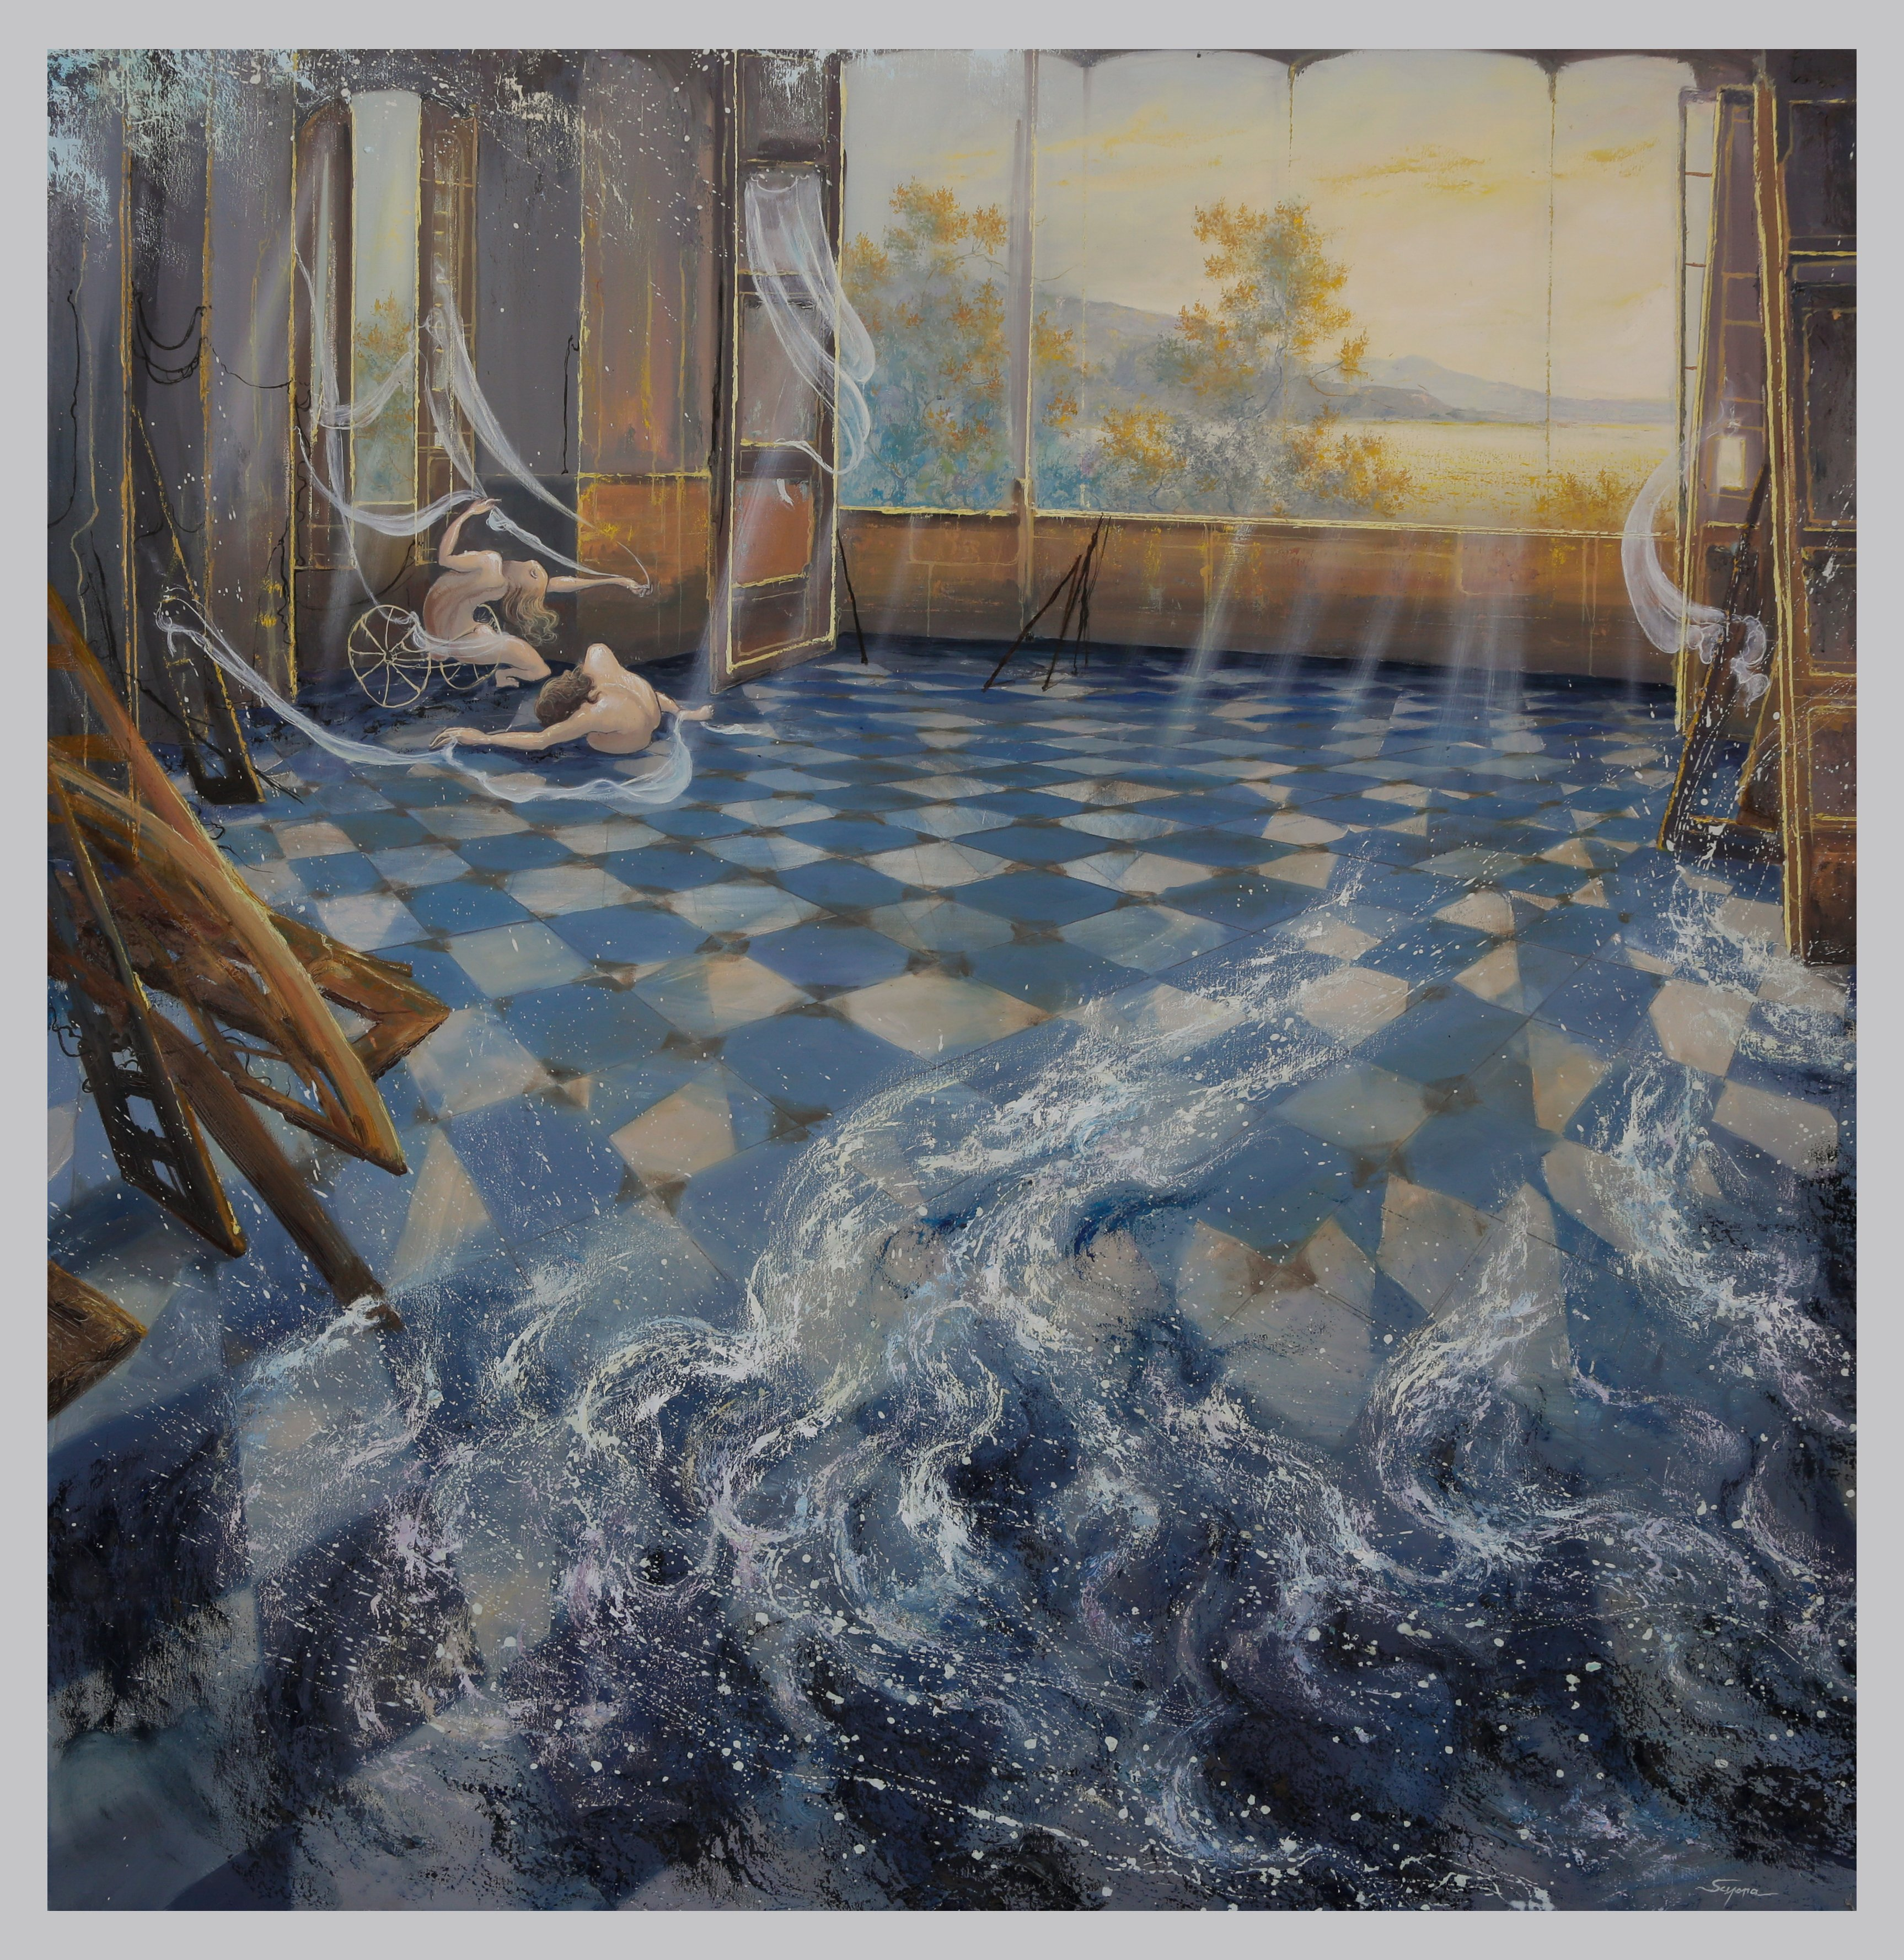 Water inside - oil on canvas - Contact for price